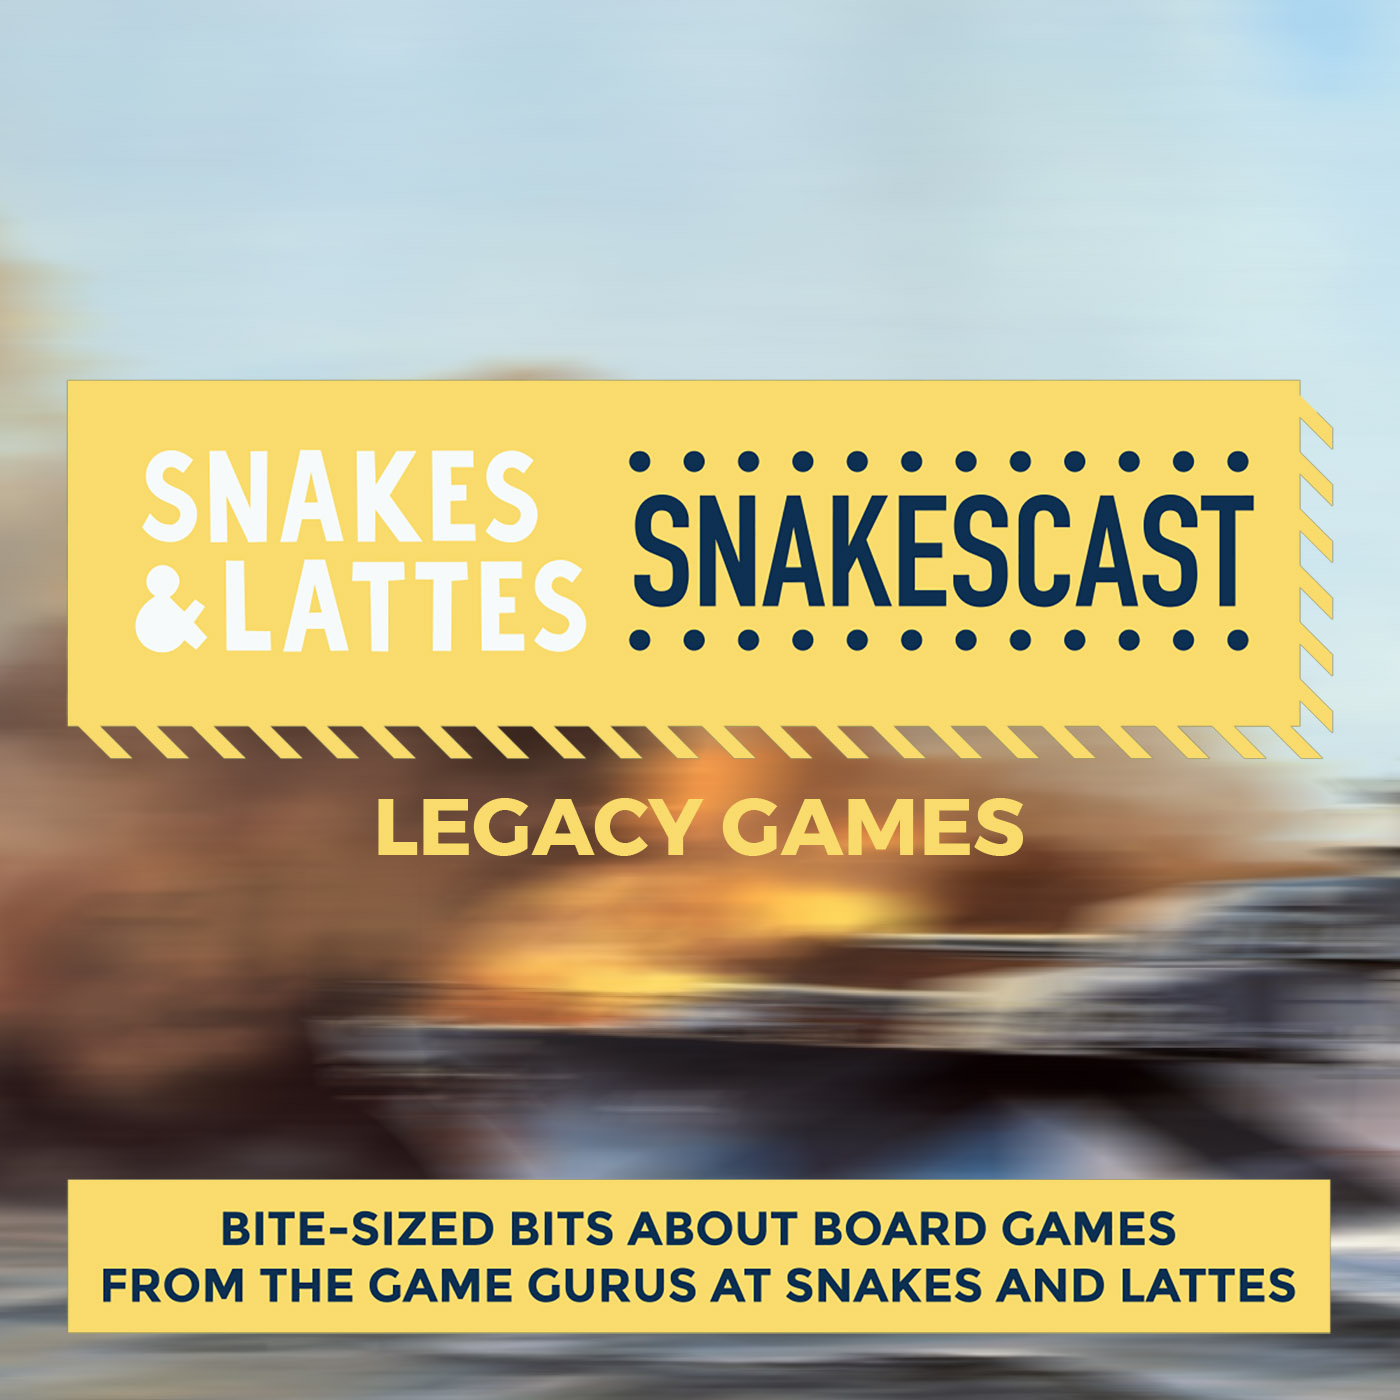 Legacy Games, Part 1 - Everything that happens is your responsibility